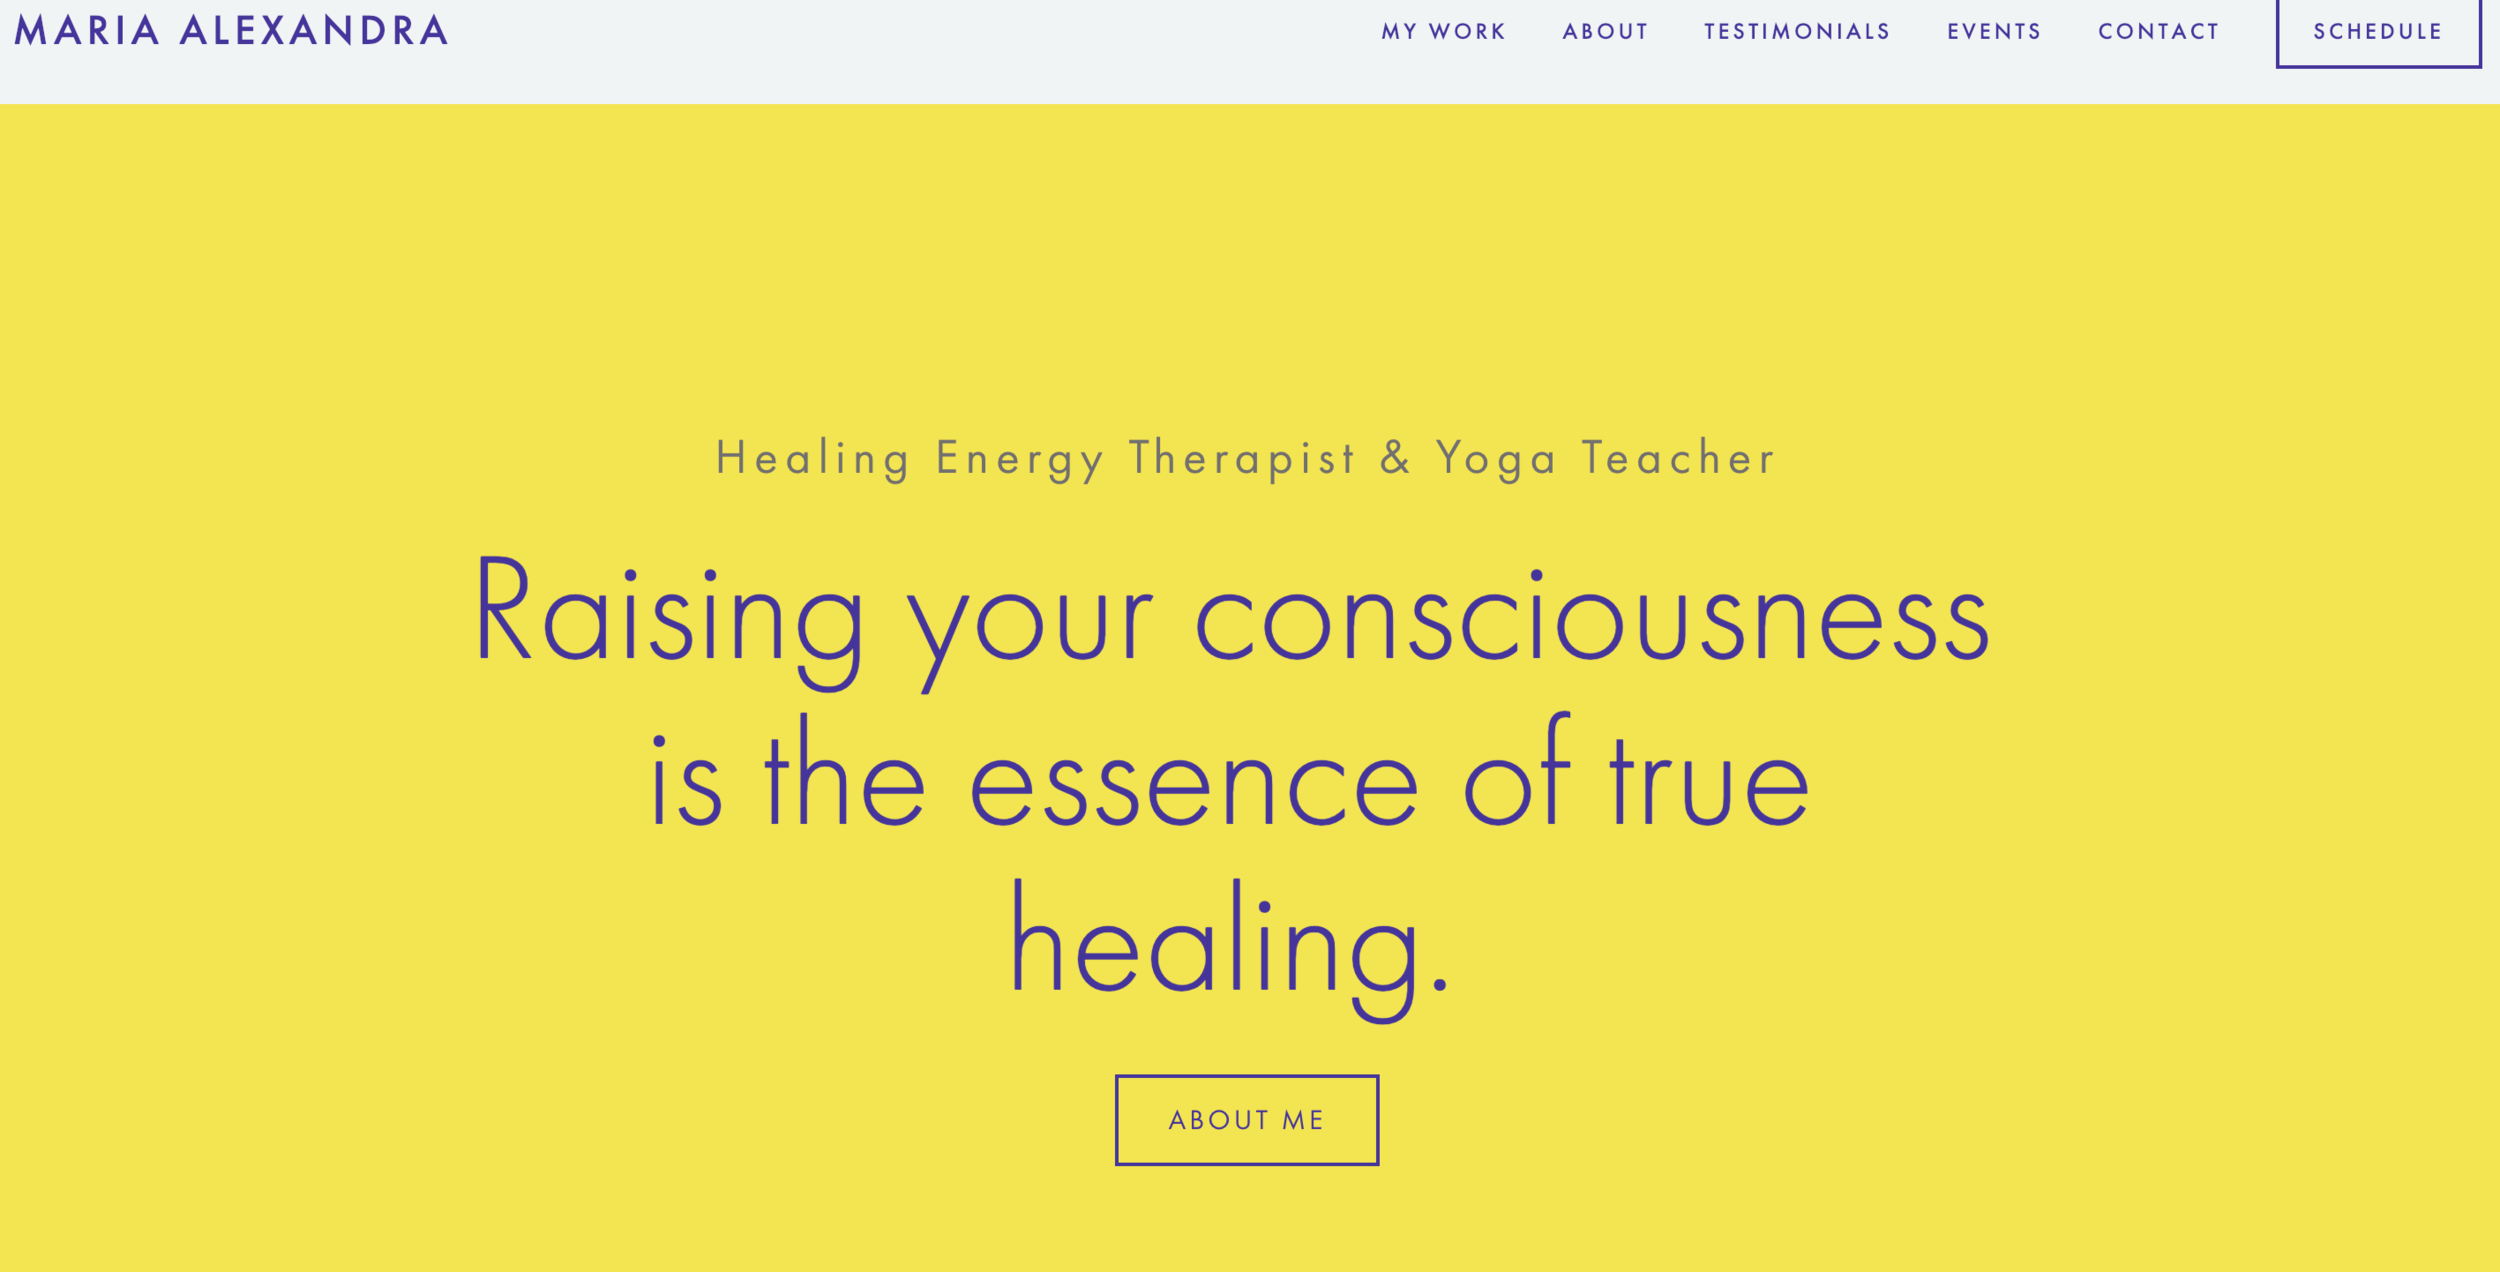 Energy Therapist & Yoga Teacher - Website design & development, Marketing strategy, Content Marketing